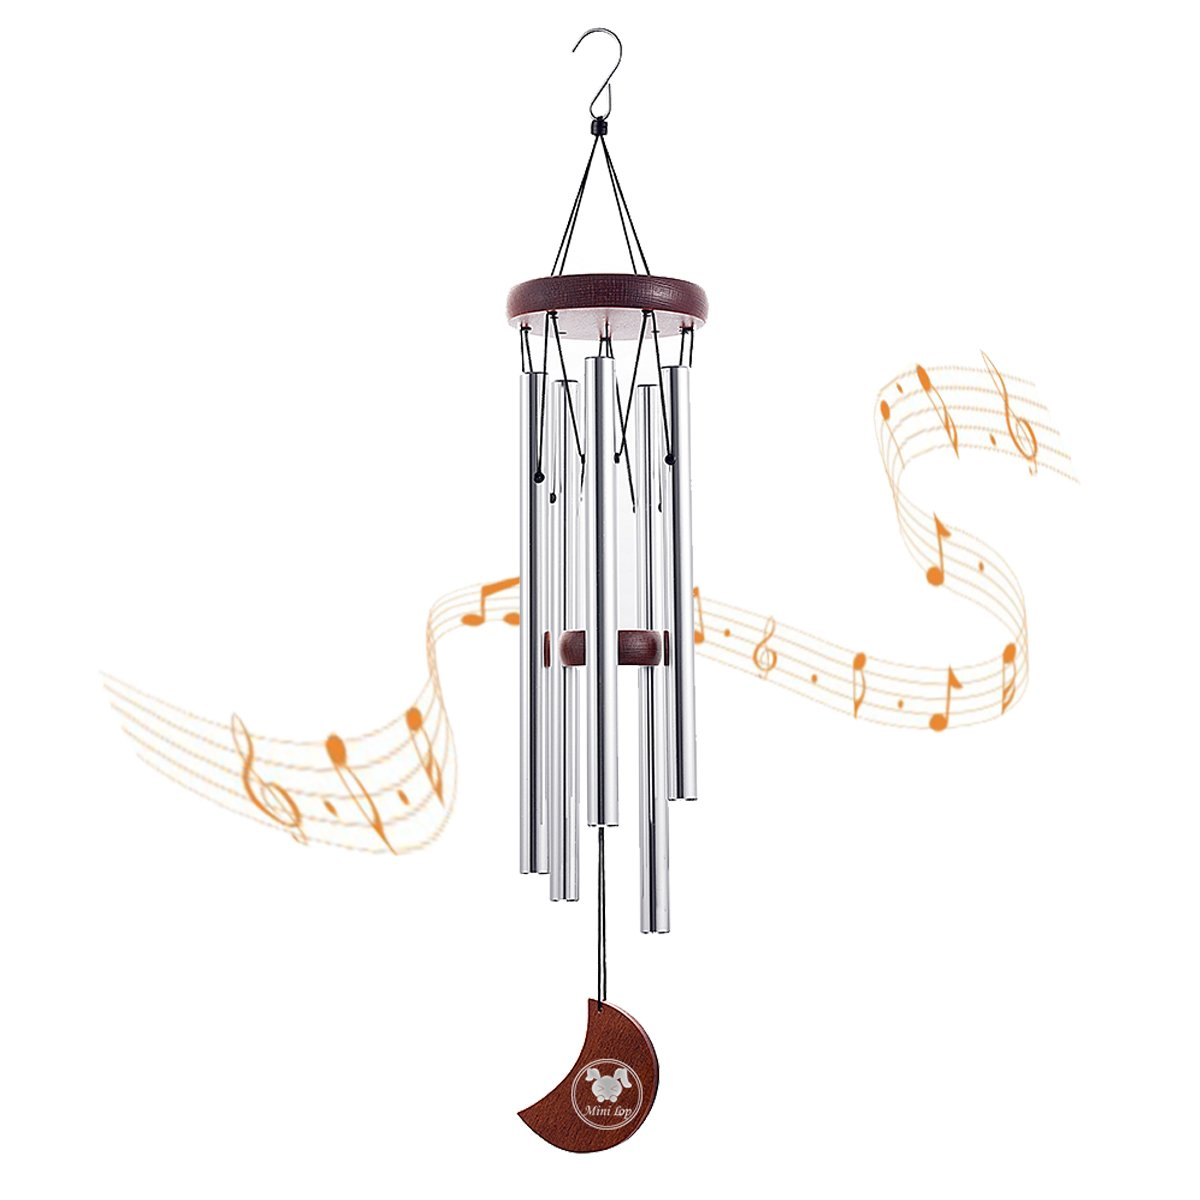 MINILOP Wooden Moon Wind Chime Outdoor,23 Inch Beautiful Large Music WindChimes with 5 Hollow Aluminum Metal S Hook Tubes Tuned for Garden,Patio,Balcony Decor